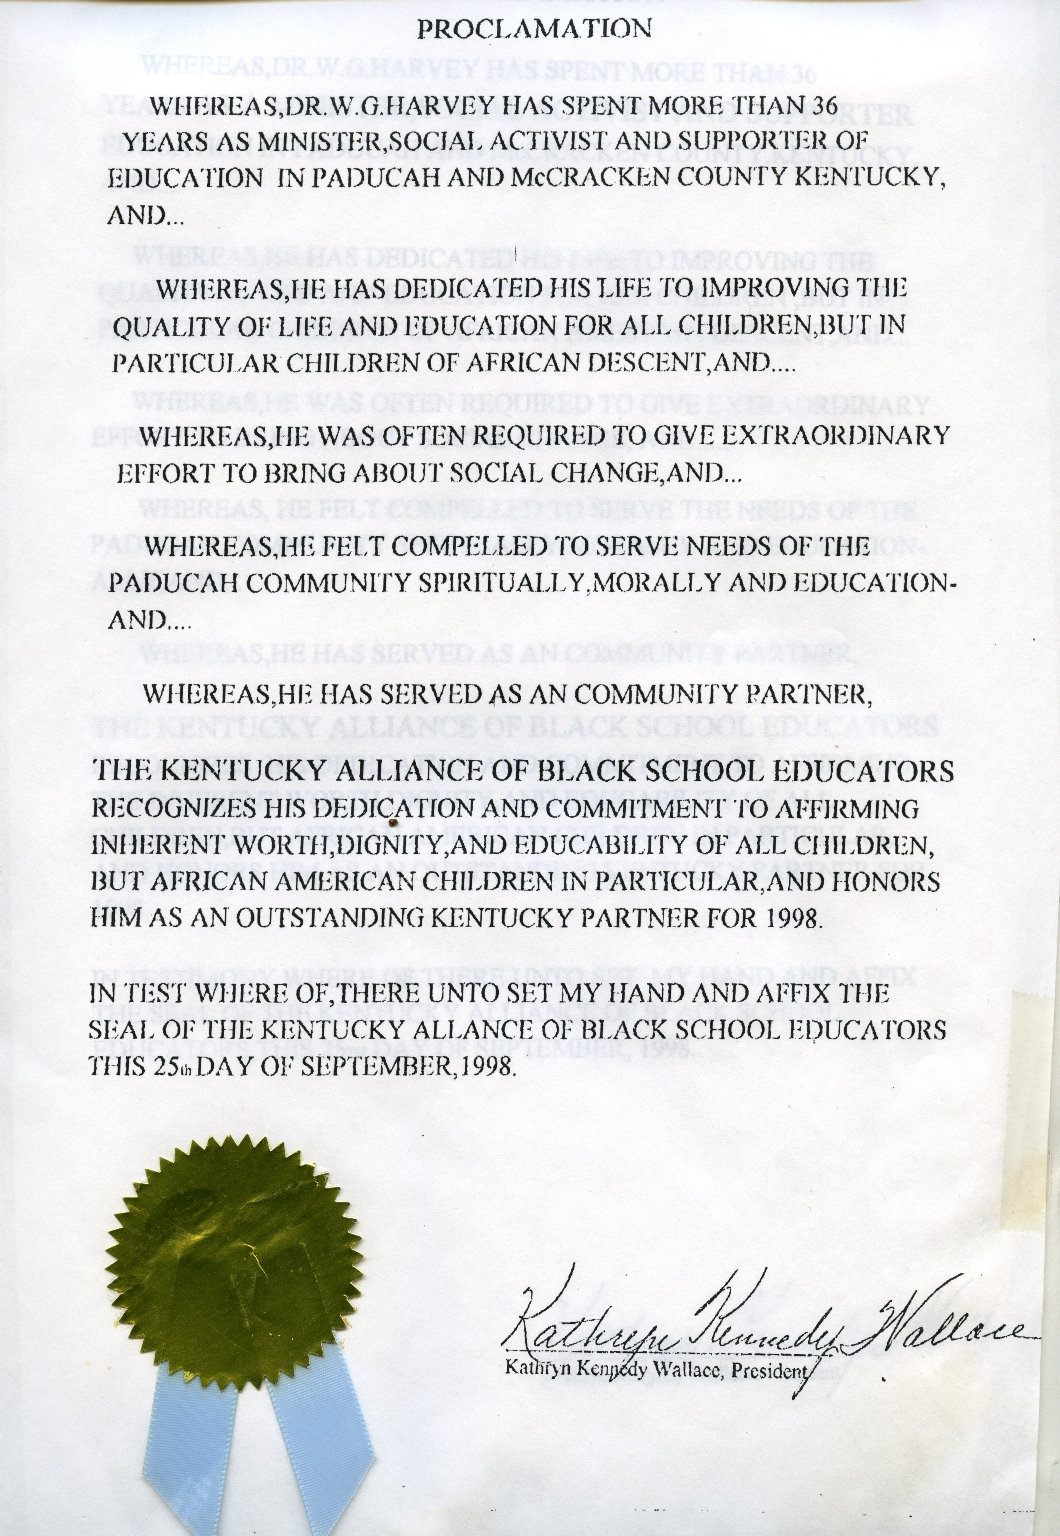 Kentucky Alliance of Black School Educators Proclamation